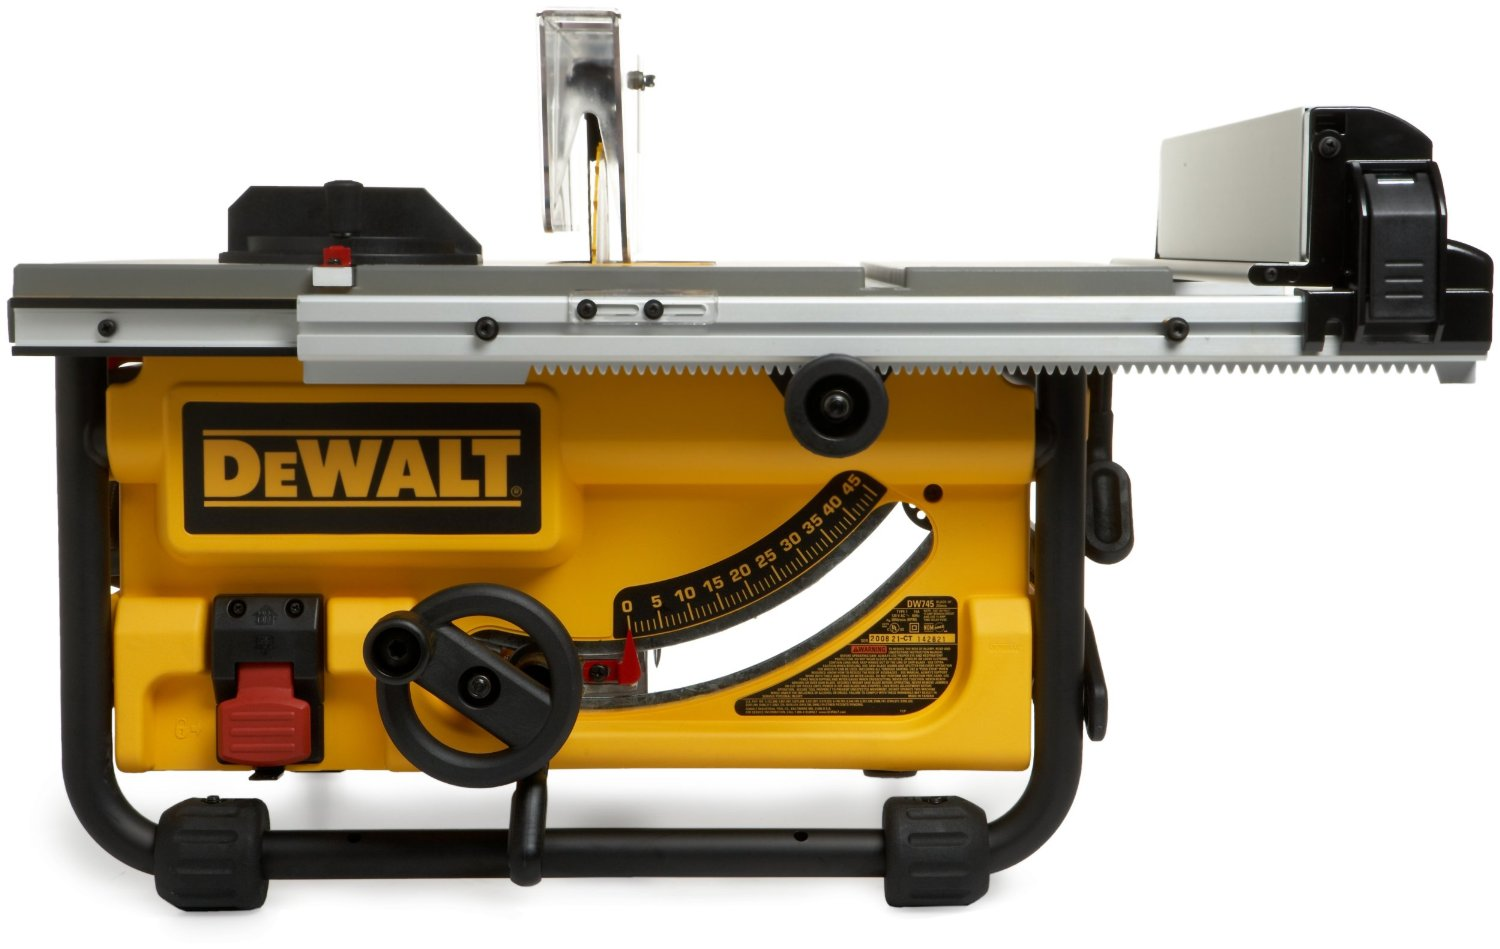 dewalt dw745 10 inch portable table saw review